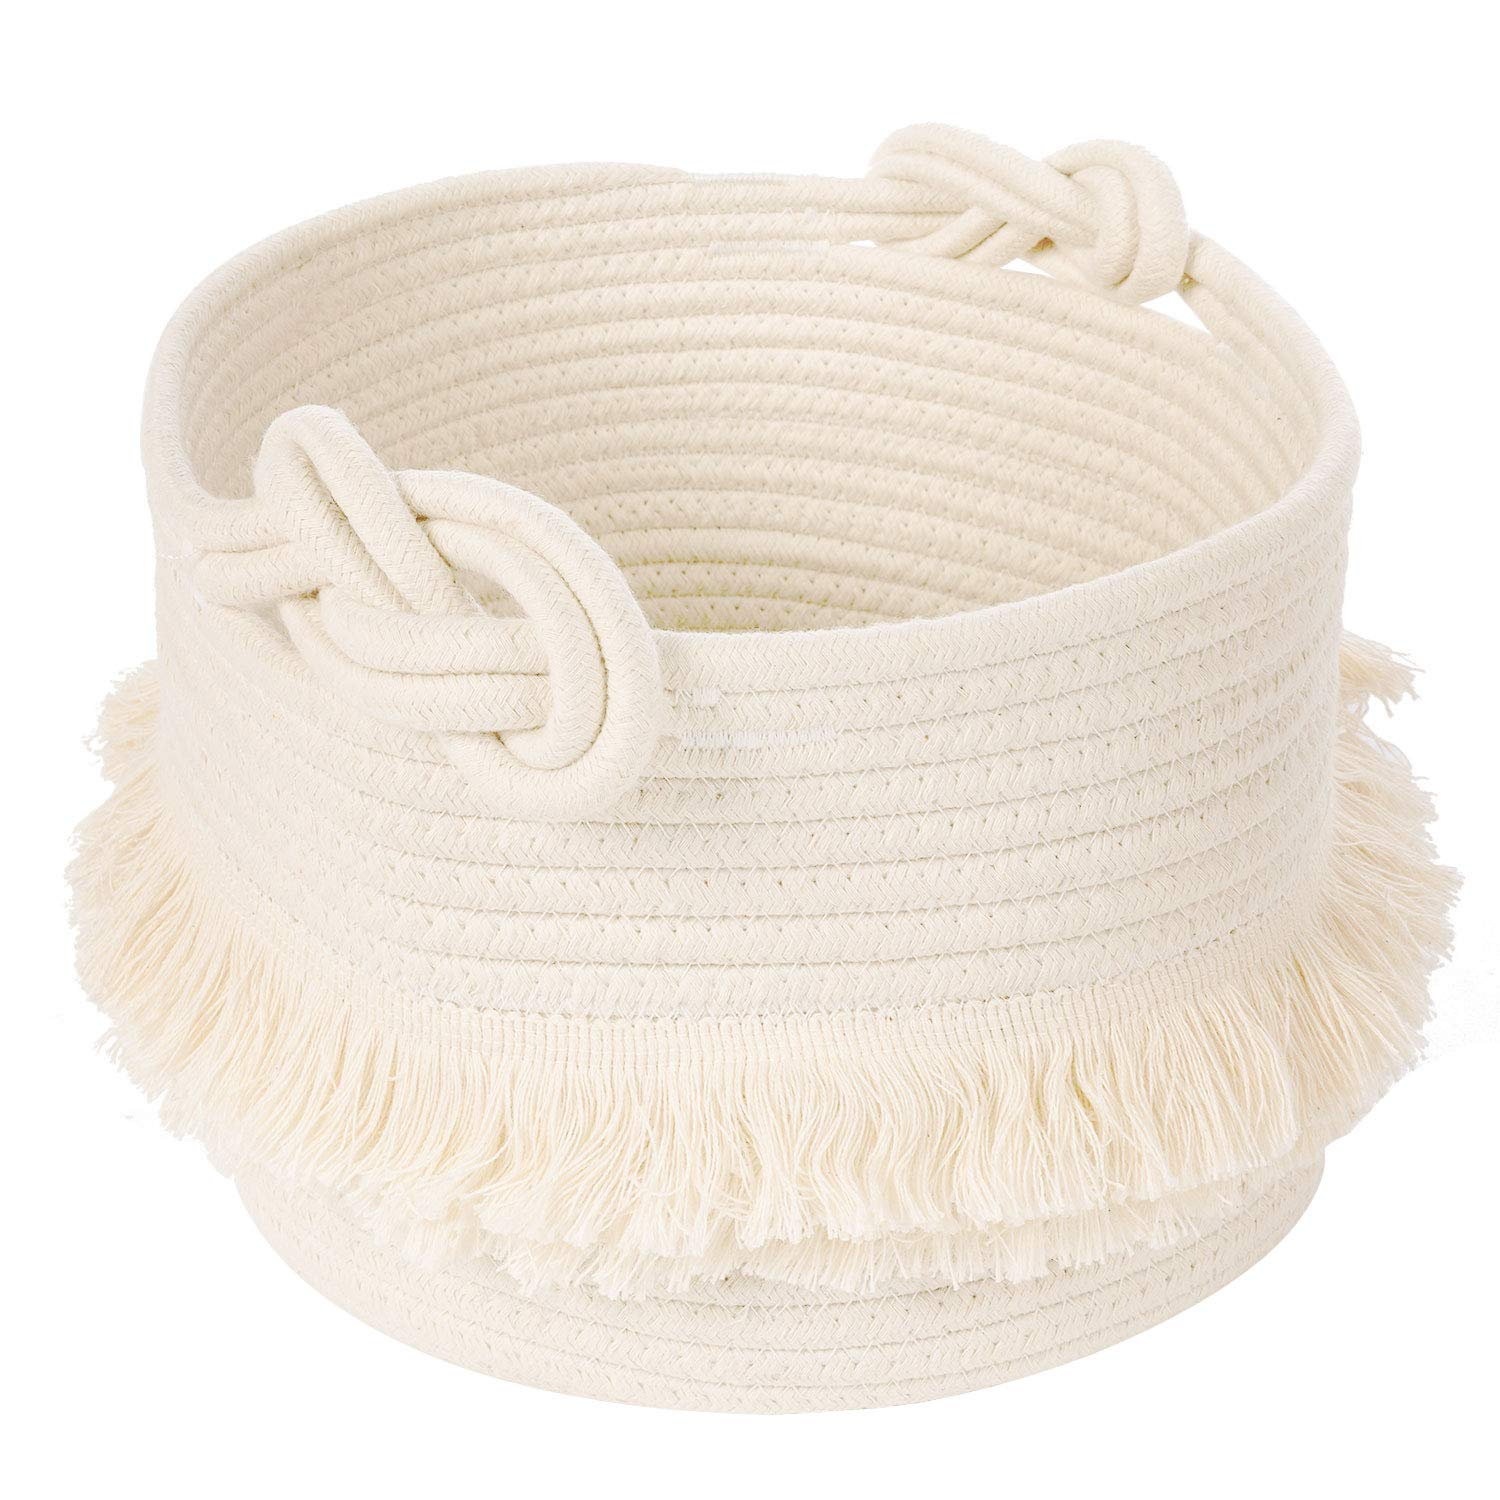 Small Woven Storage Baskets Cotton Rope Decorative Hamper for Diaper, Blankets, Magazine and Keys, Cute Tassel Nursery Decor - Home Storage Container – 9.5'' x 7''